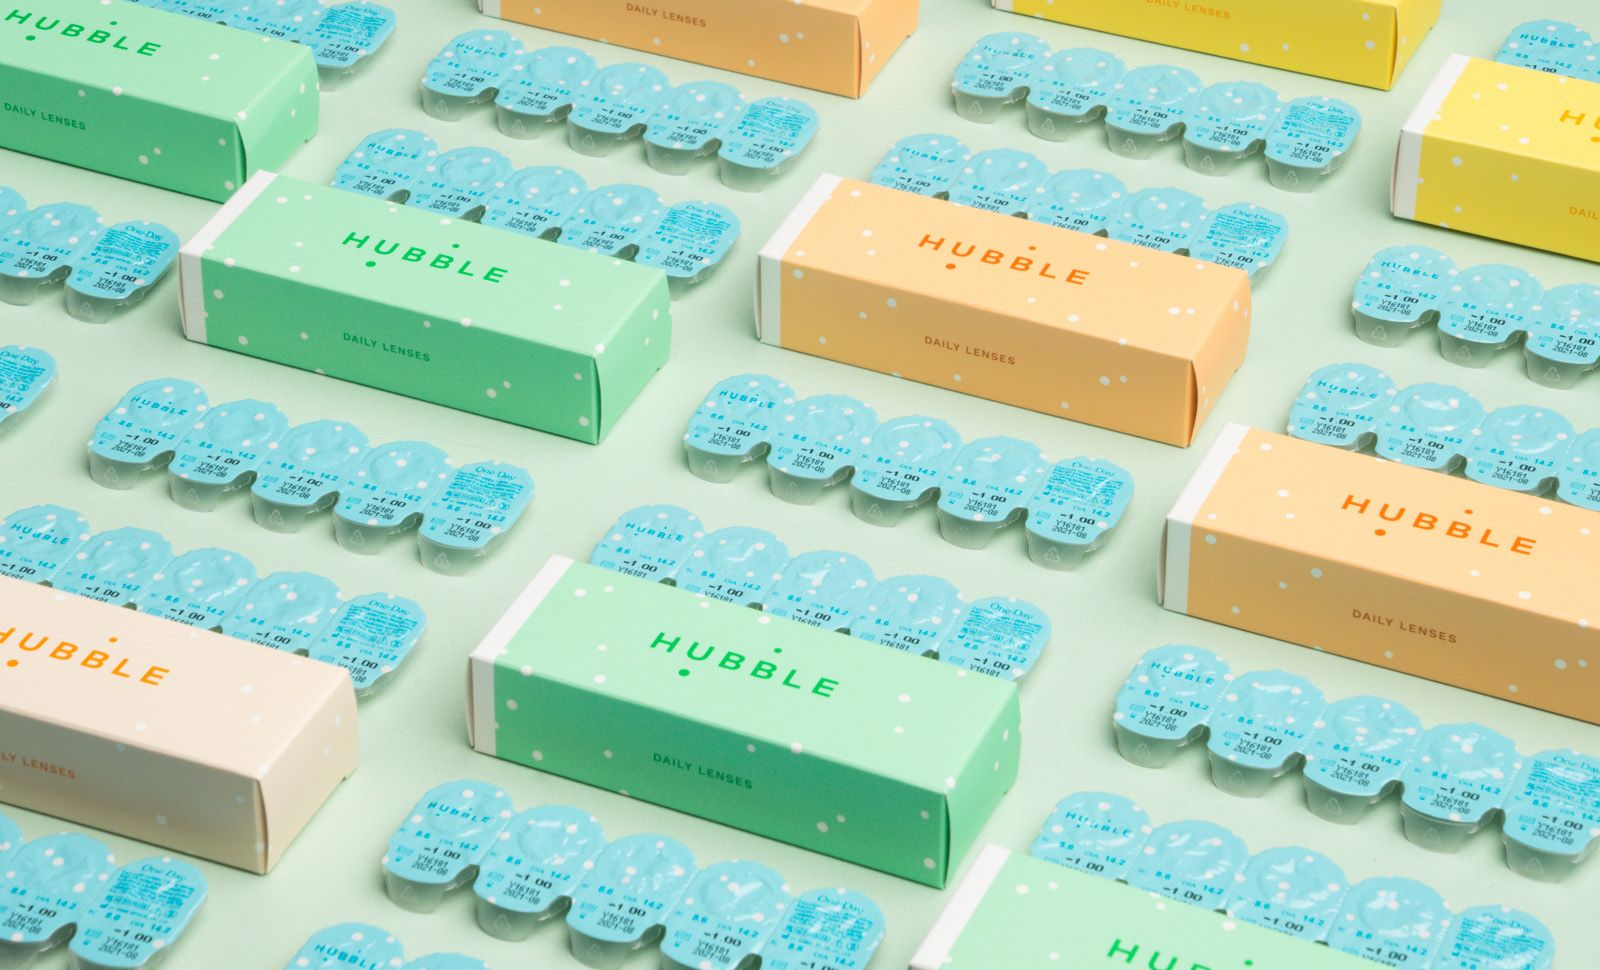 Packs of Hubble contact lenses